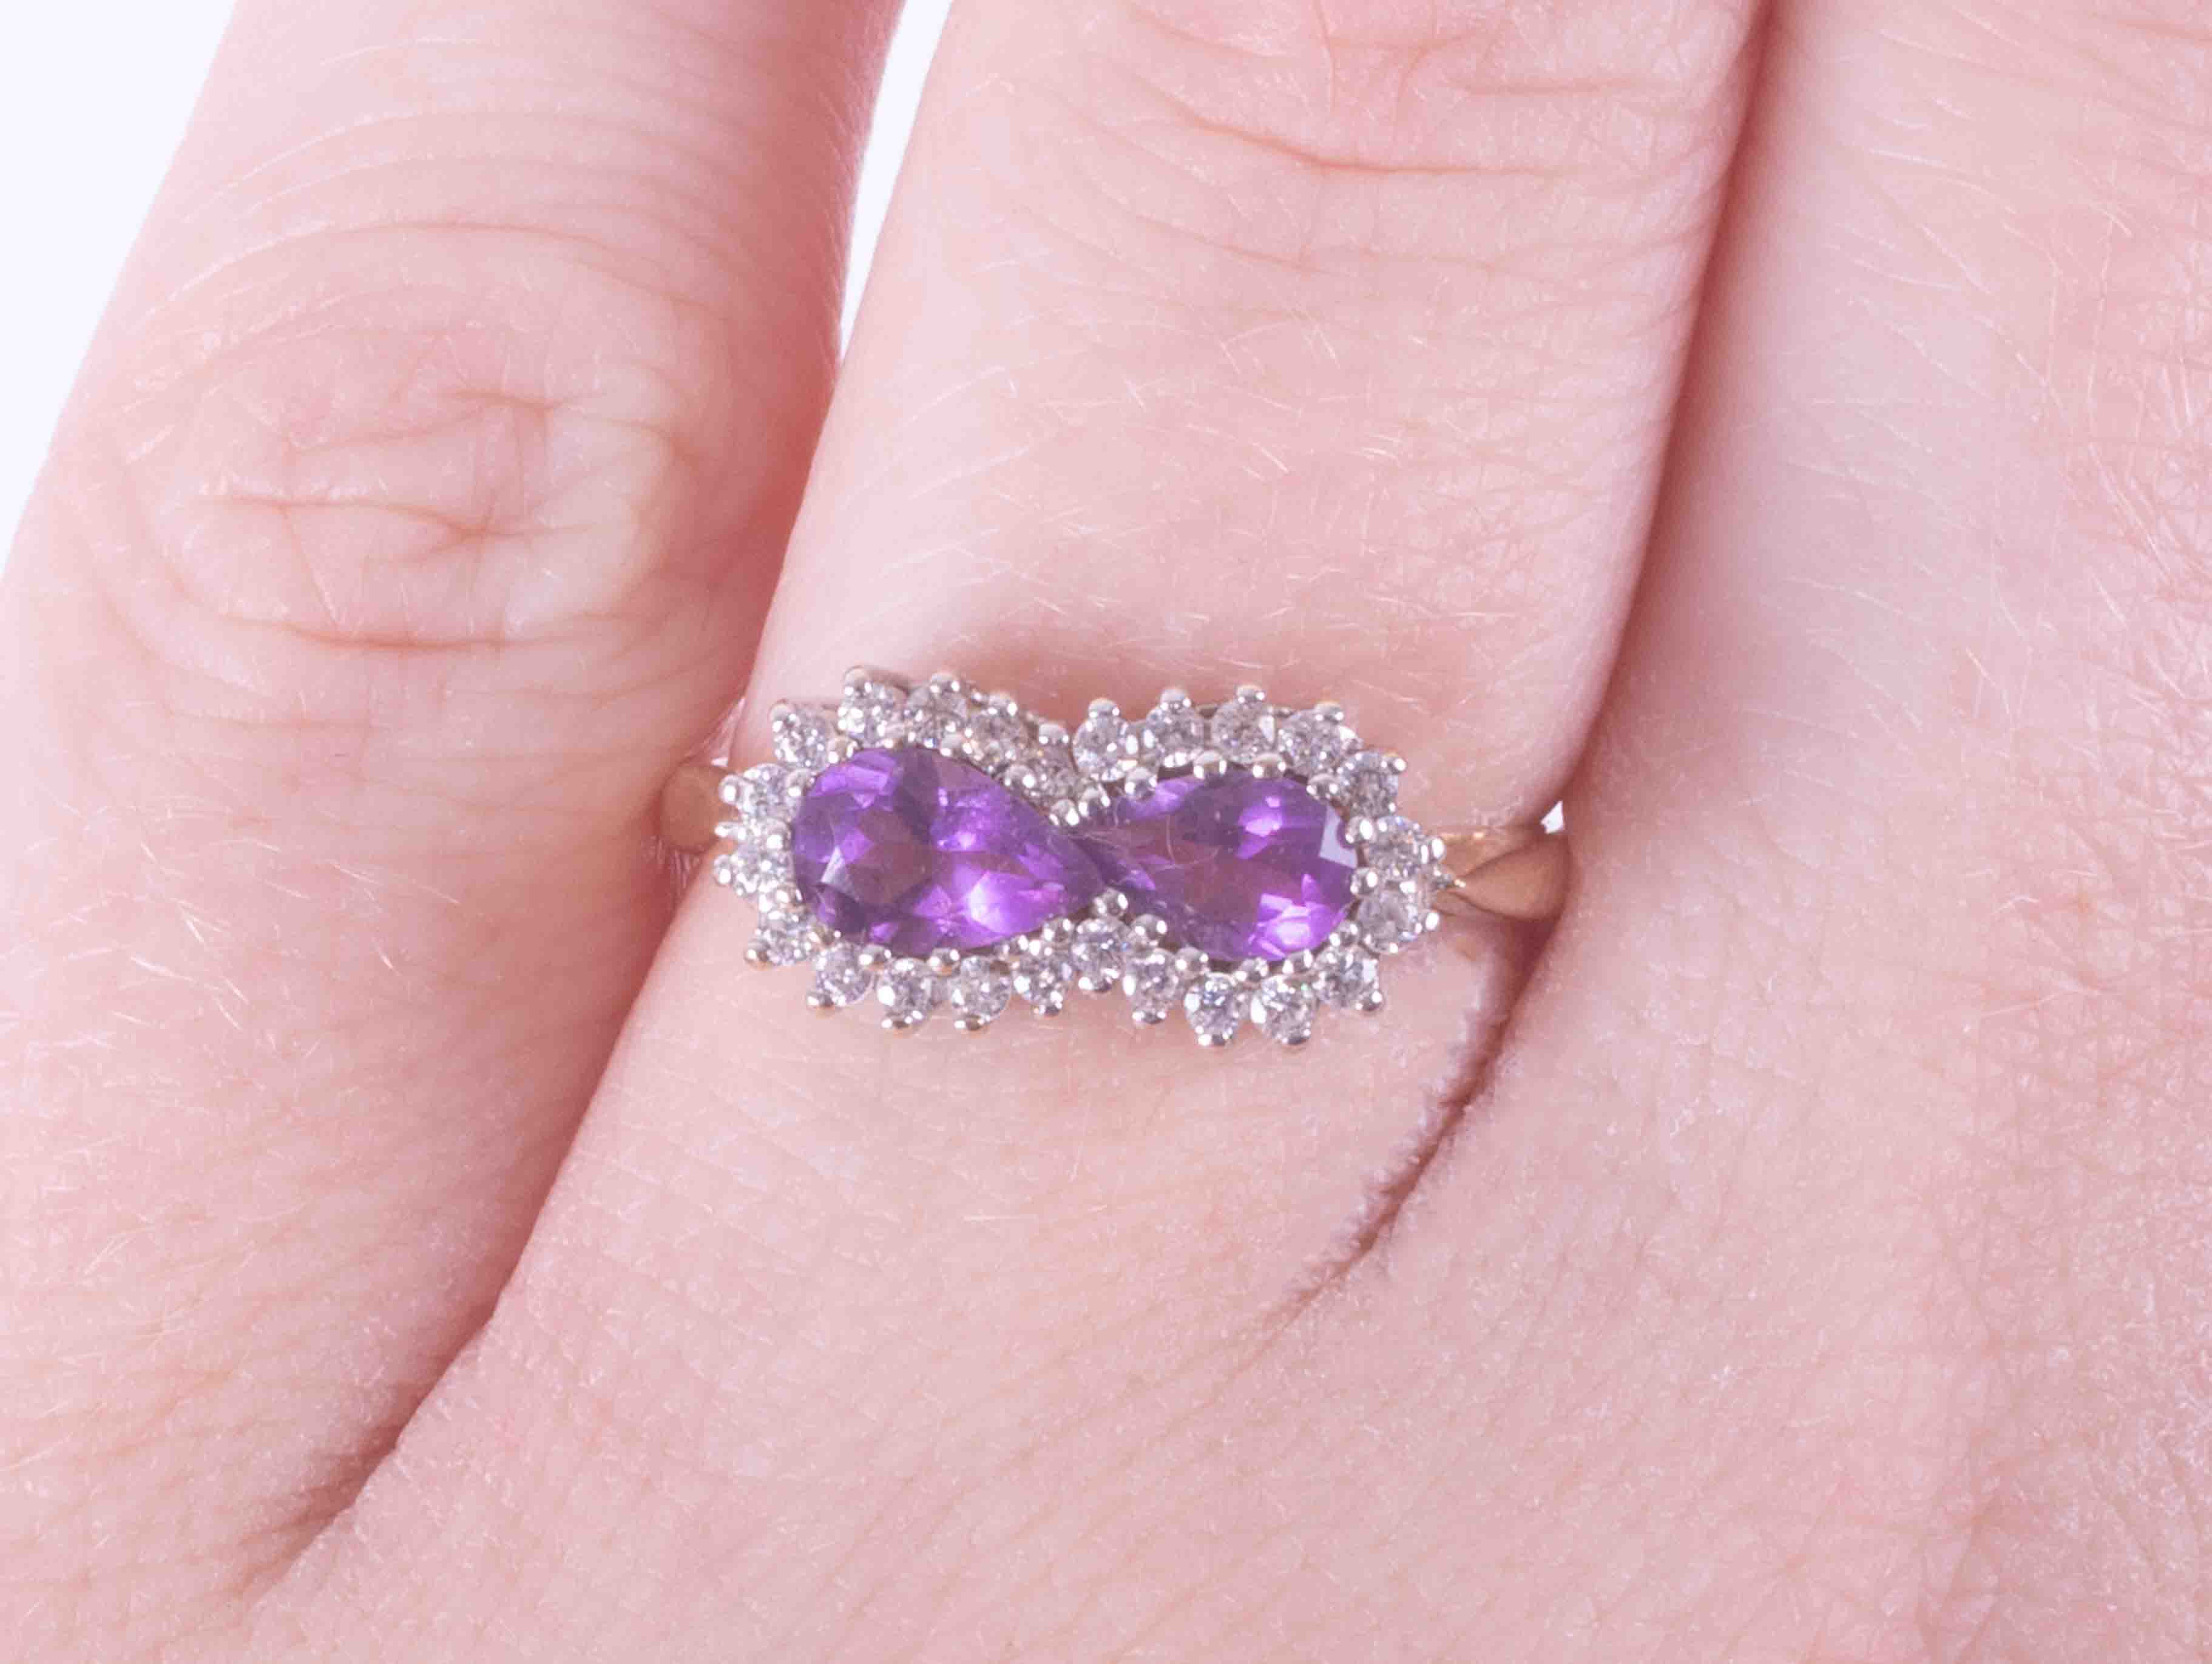 A 9ct yellow & white gold cluster ring set two pear shaped amethysts weight approx. 0.85 carats - Image 2 of 2